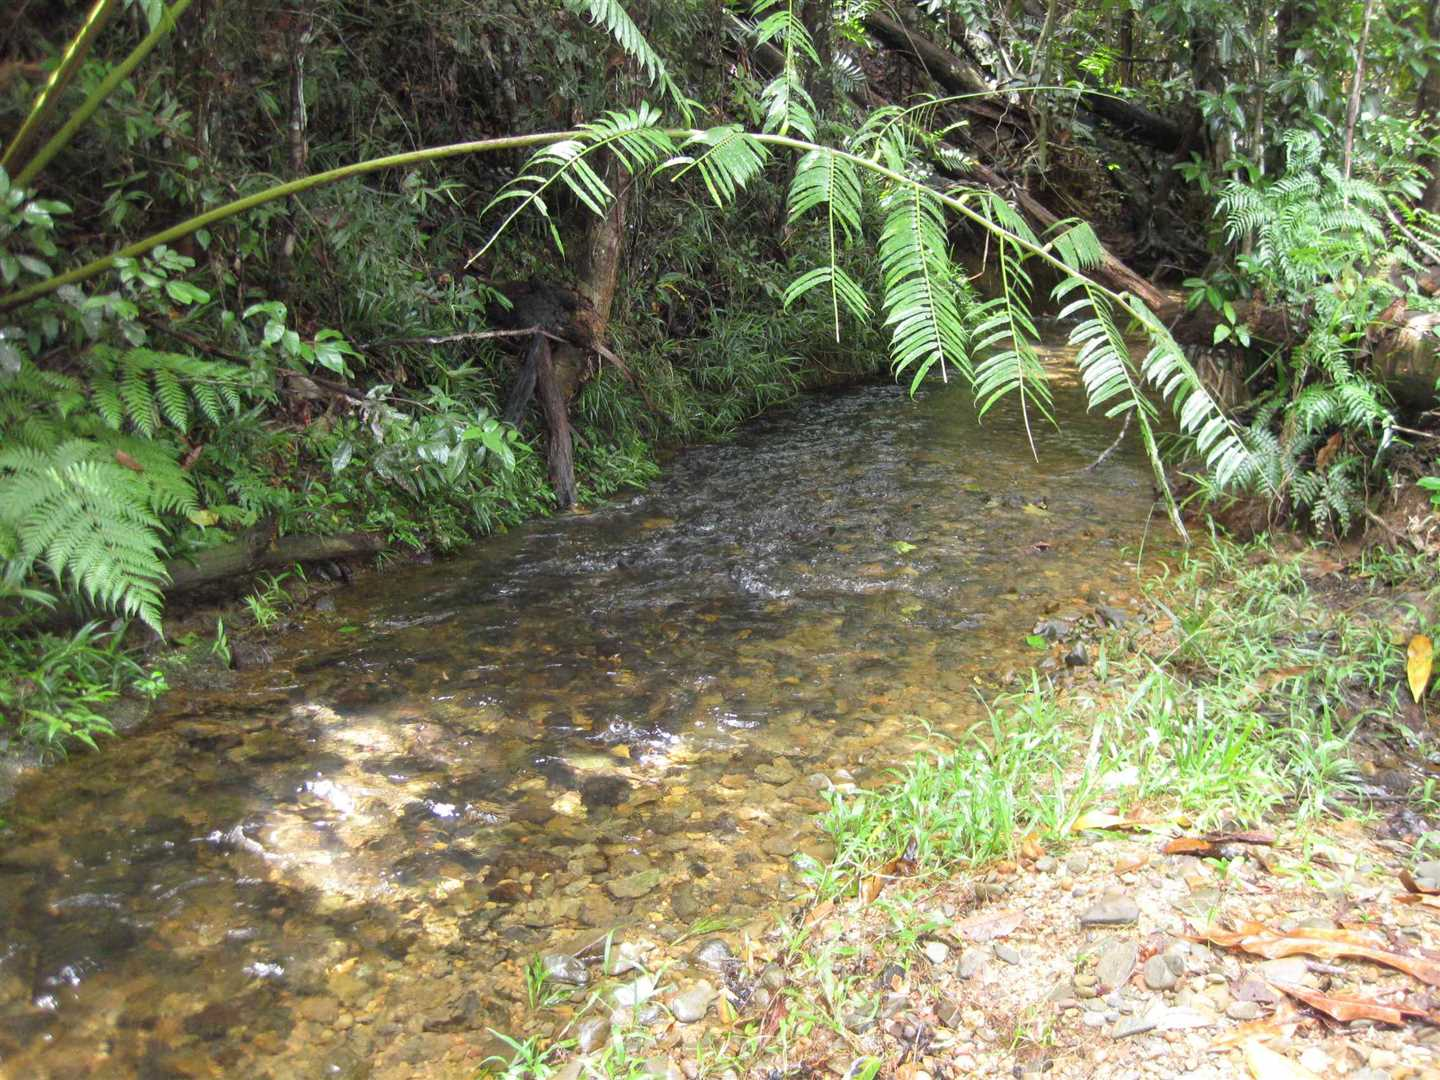 View of part of permanent creek one of two, photo 1